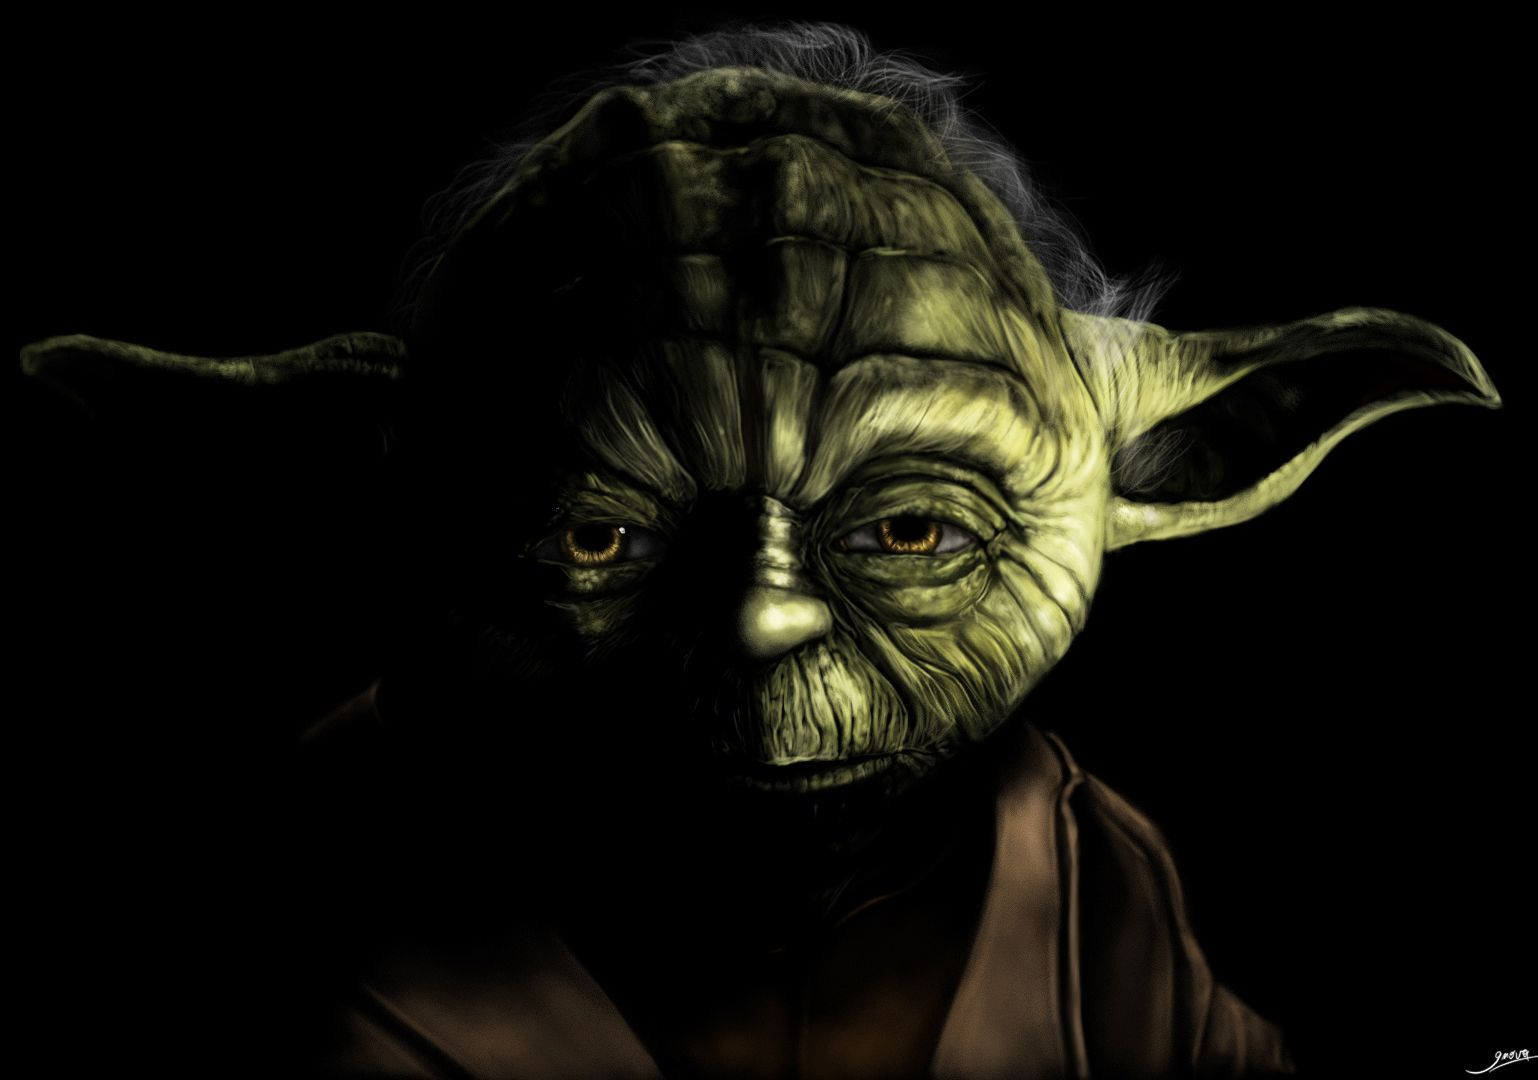 yoda iphone wallpaper images free download 1920×1080 yoda